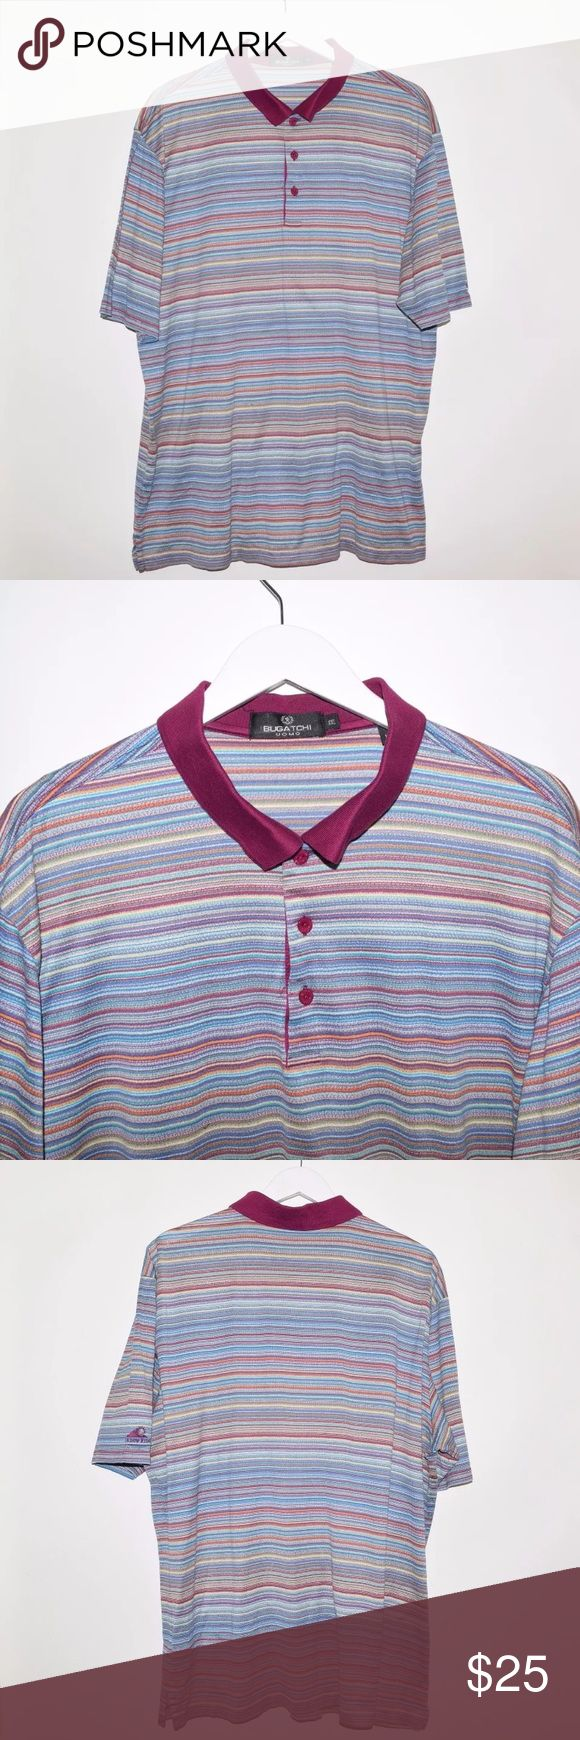 Rare Bugatchi Uomo Mens Egyptian Cotton Polo Shirt Brand: Bugatchi Uomo Item name: Men's Striped Mercerized Egyptian CottonPolo Shirt w/ custom Shadow Ridge embroidery on right sleeve.   Color: Multi-Color Condition: This is a pre-owned item. This item is in excellent used condition with no stains, rips, holes, etc. Comes from a smoke free home. Size: 2XL Measurements: Pit to Pit - 25 inches Shoulder to base - 29.5 inches Bugatchi Shirts Polos